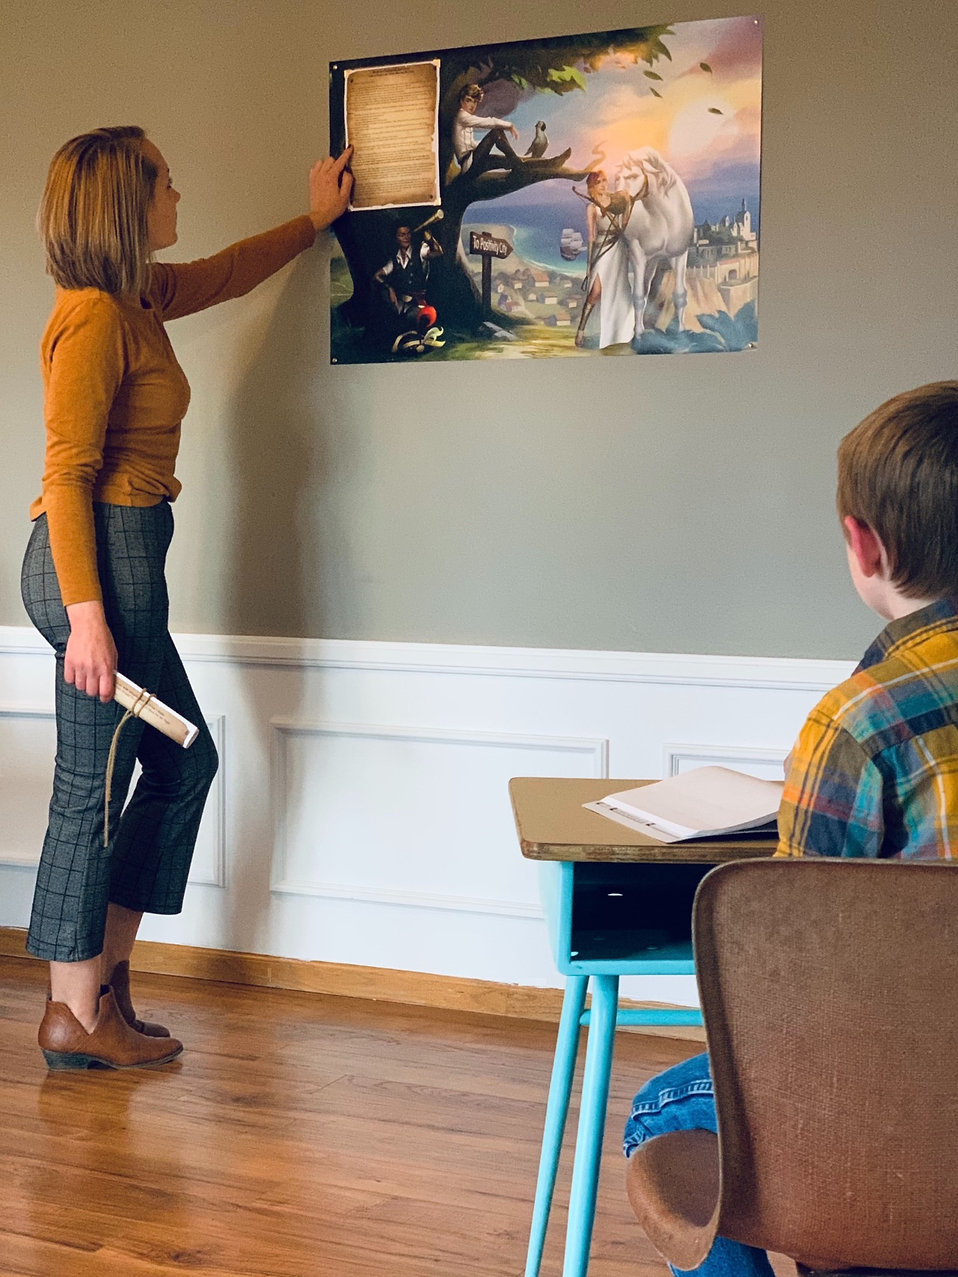 Woman teaching social emotional learning activities at home to give child a positive and growth mindset